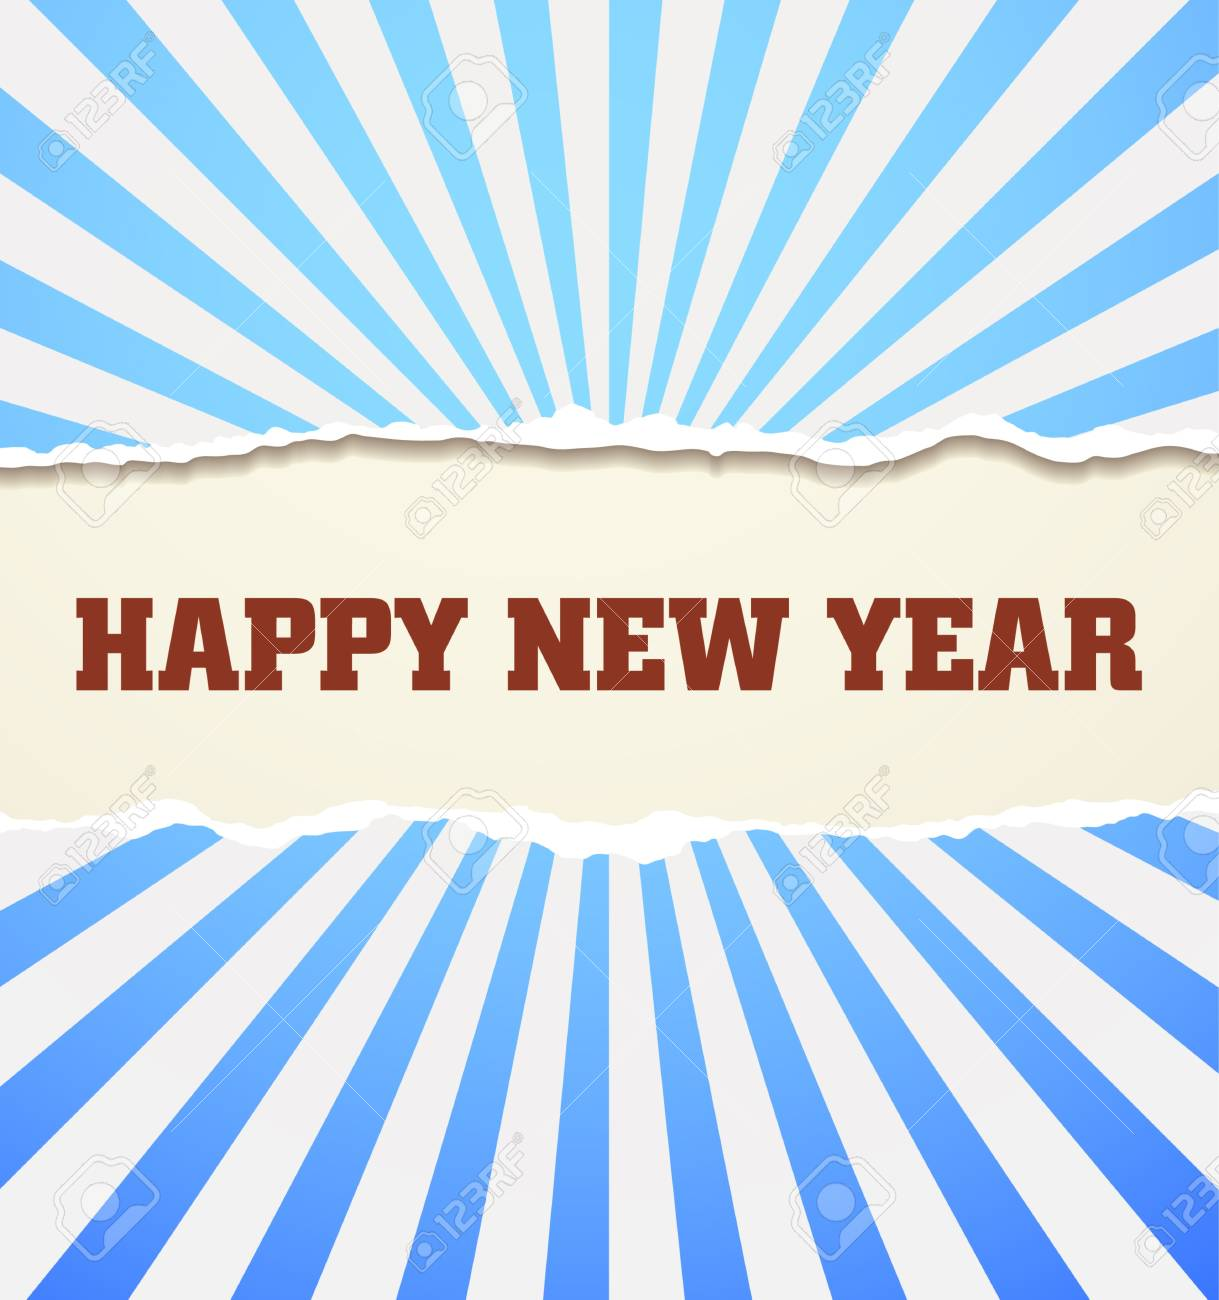 Happy New Year design card  images Stock Vector - 16549074